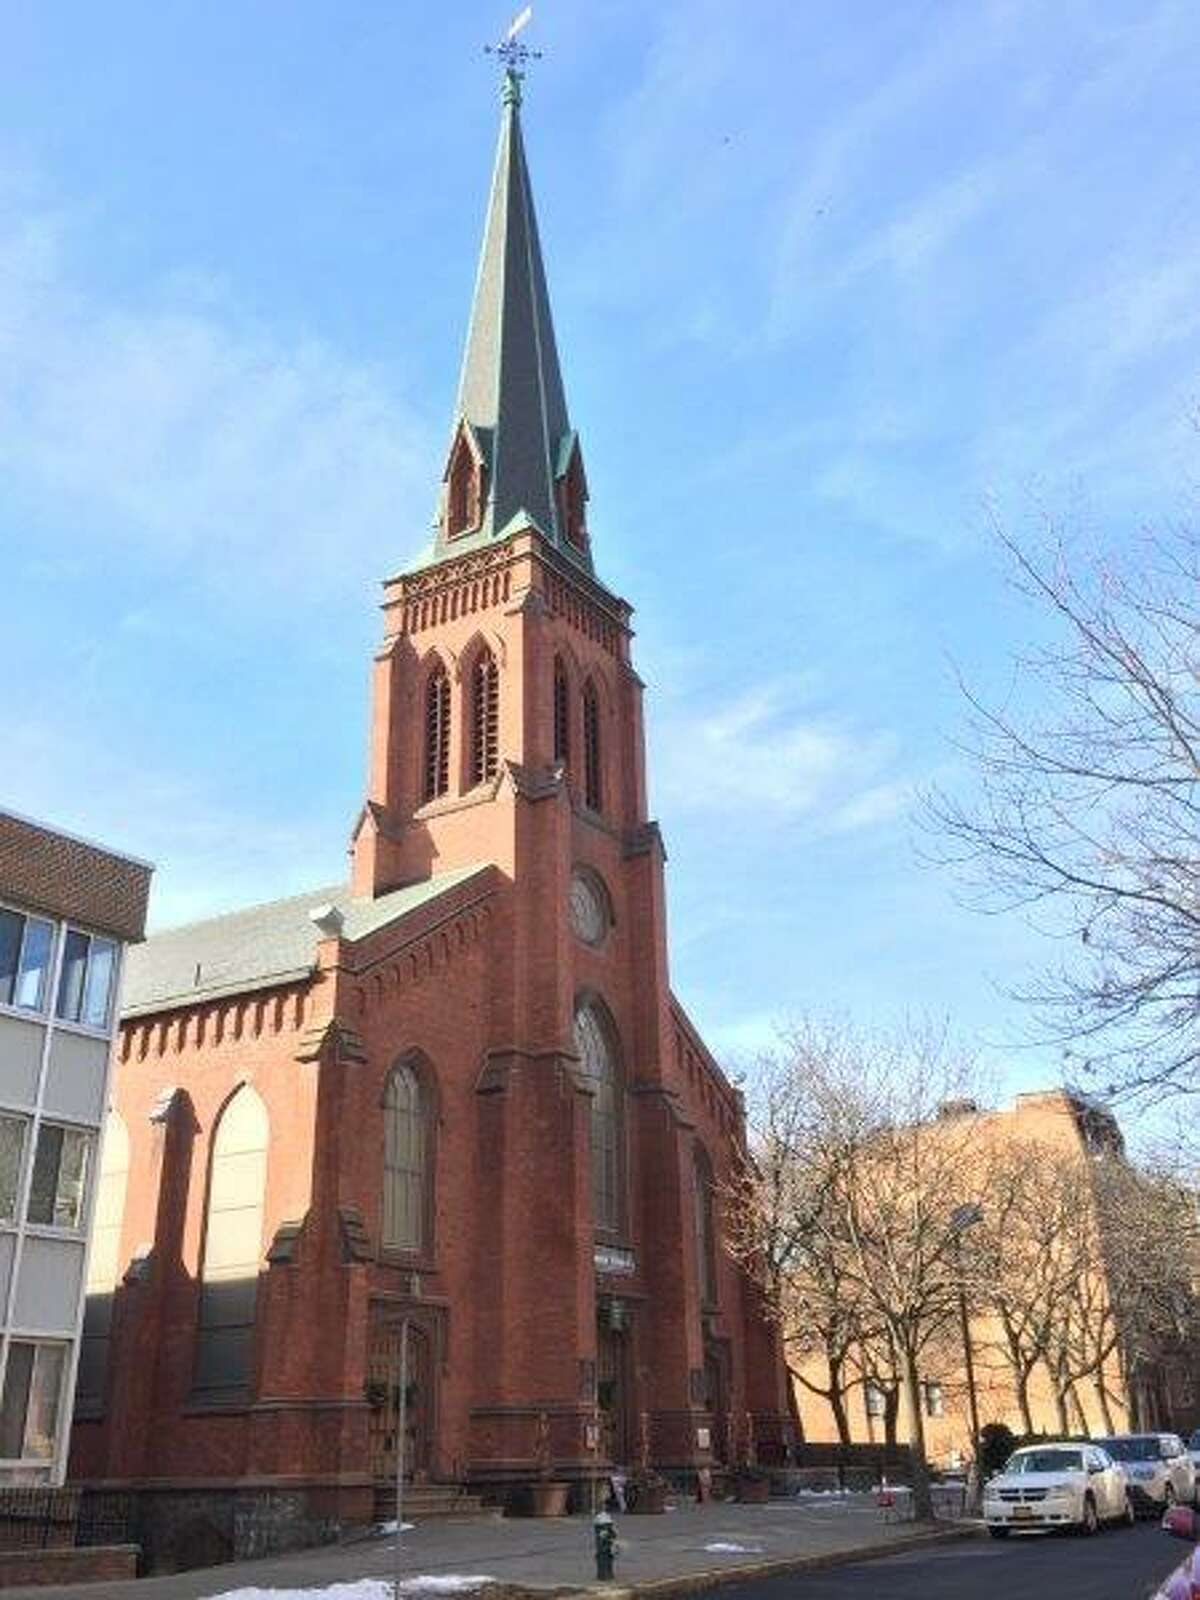 Westminster Presbyterian Church's noteworthy architecture landed it on Albany's Sacred Sites tour before the pandemic. Now, the historic church is installing a new female pastor.